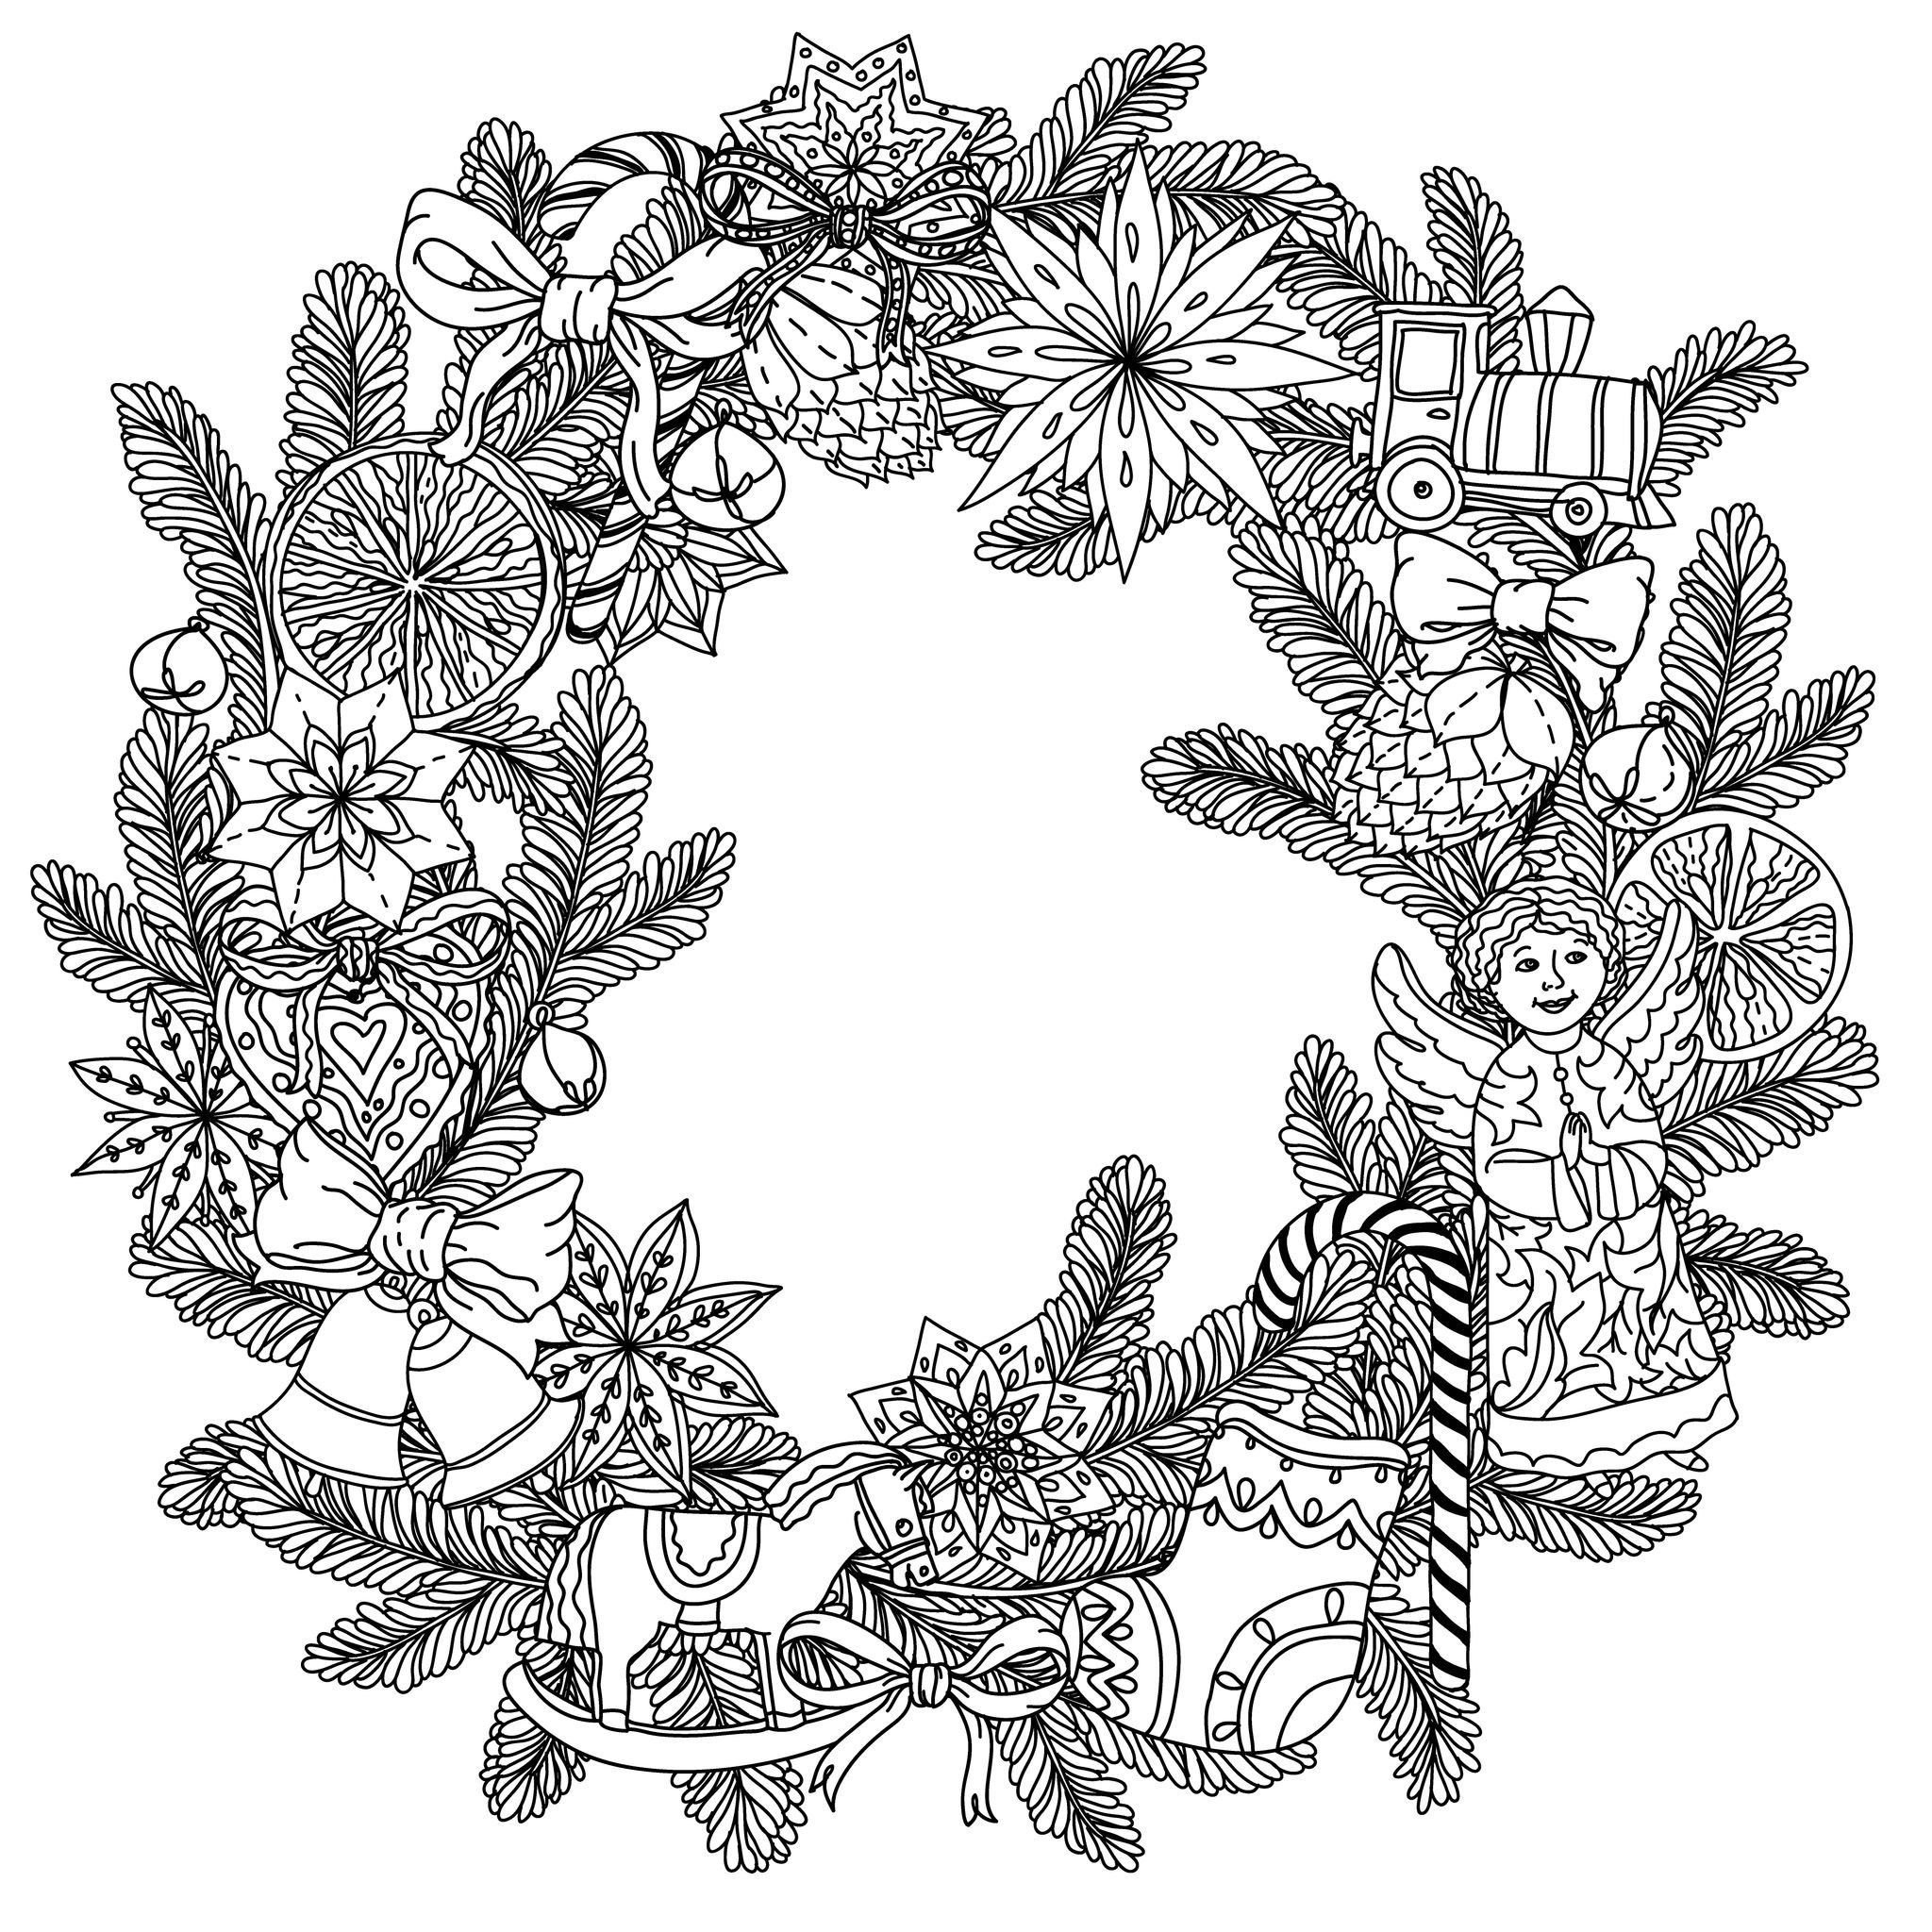 49525223 christmas wreath with decorative items black and white the best for your design - Coloriage mandala de noel ...